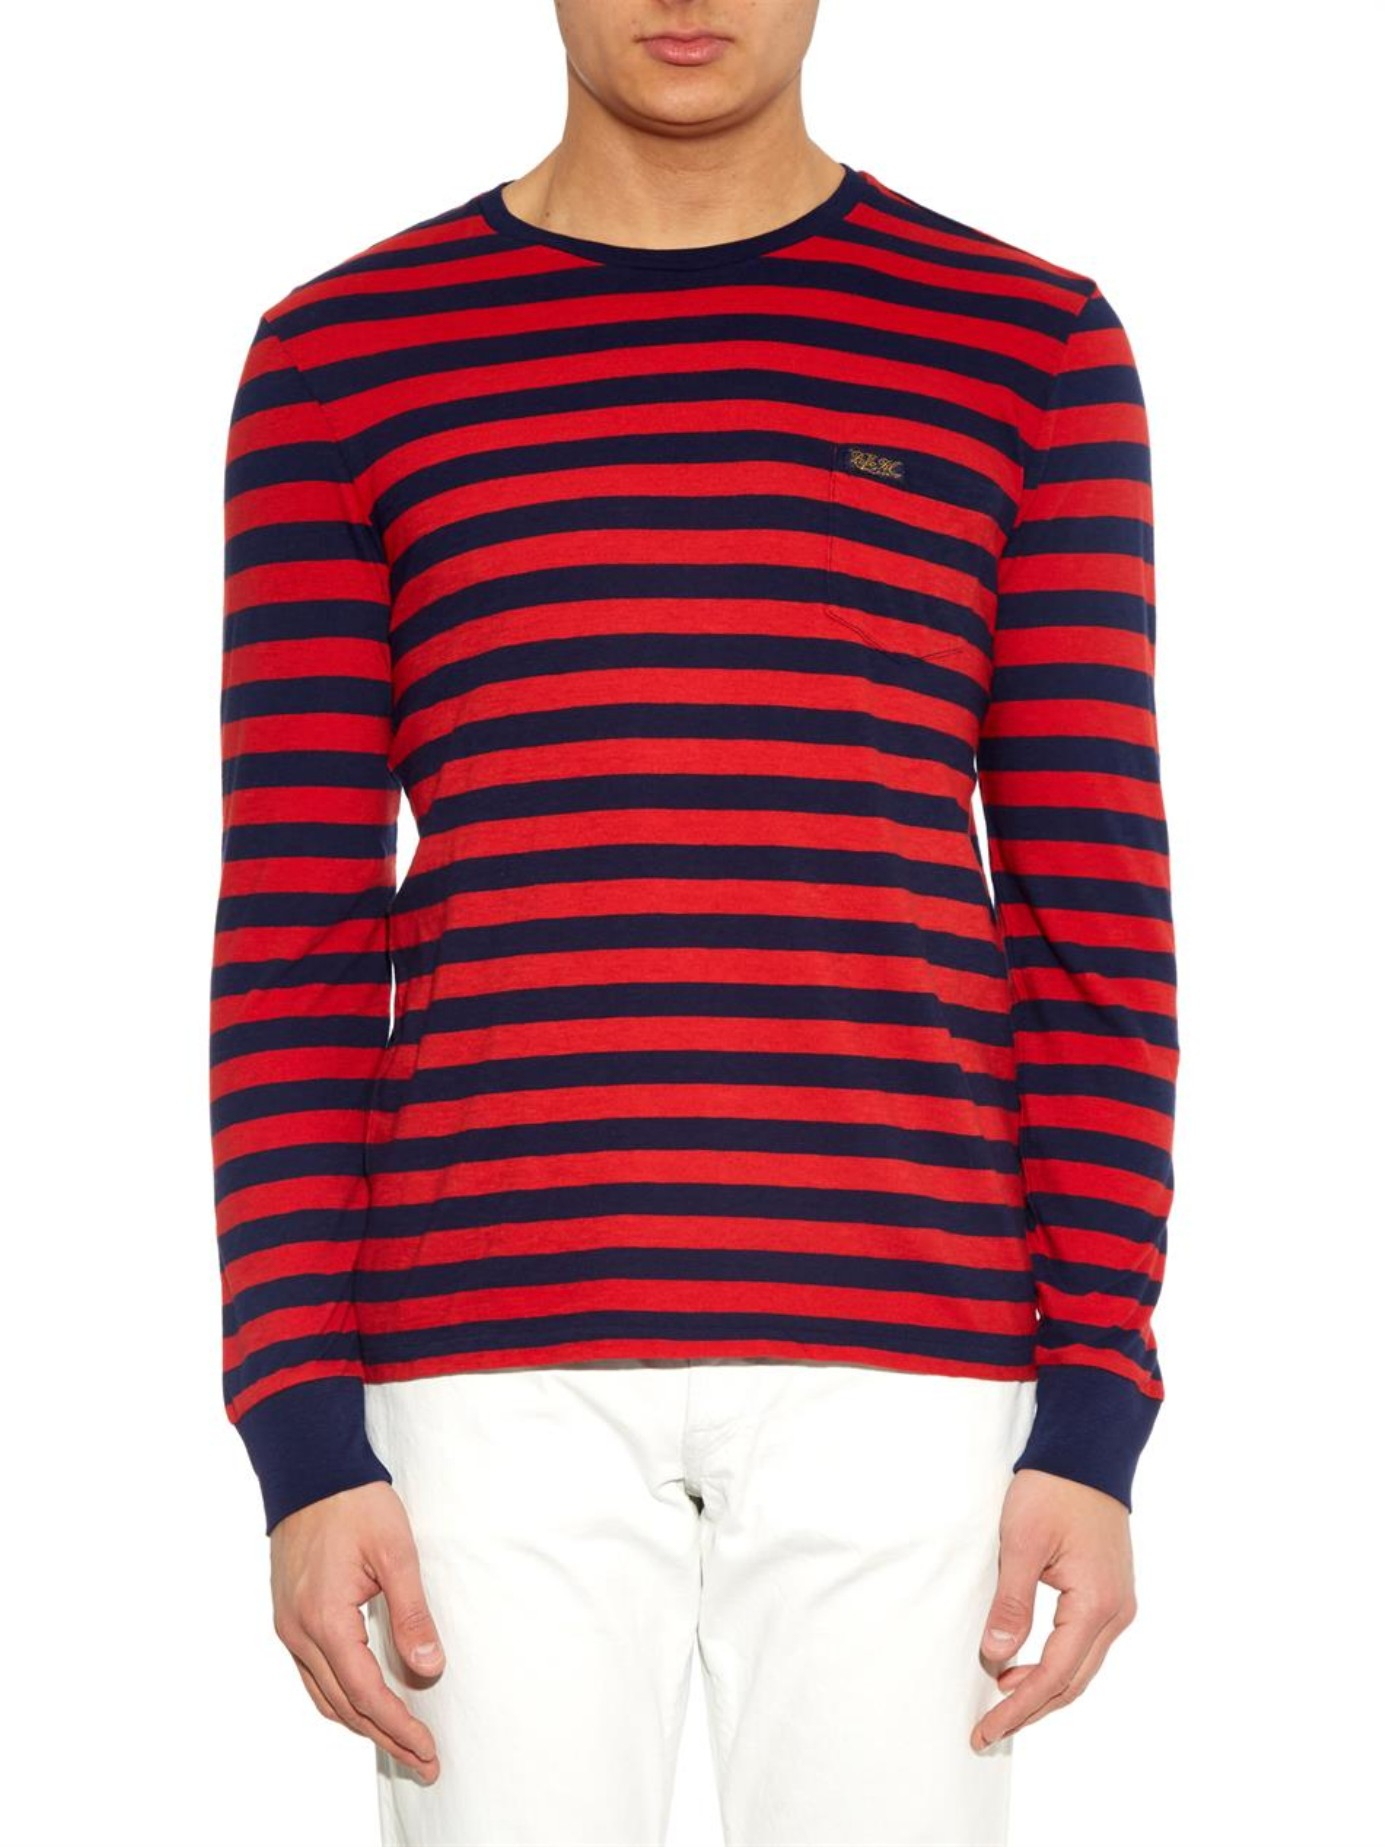 Polo ralph lauren Long-Sleeved Striped Jersey T-Shirt in ...